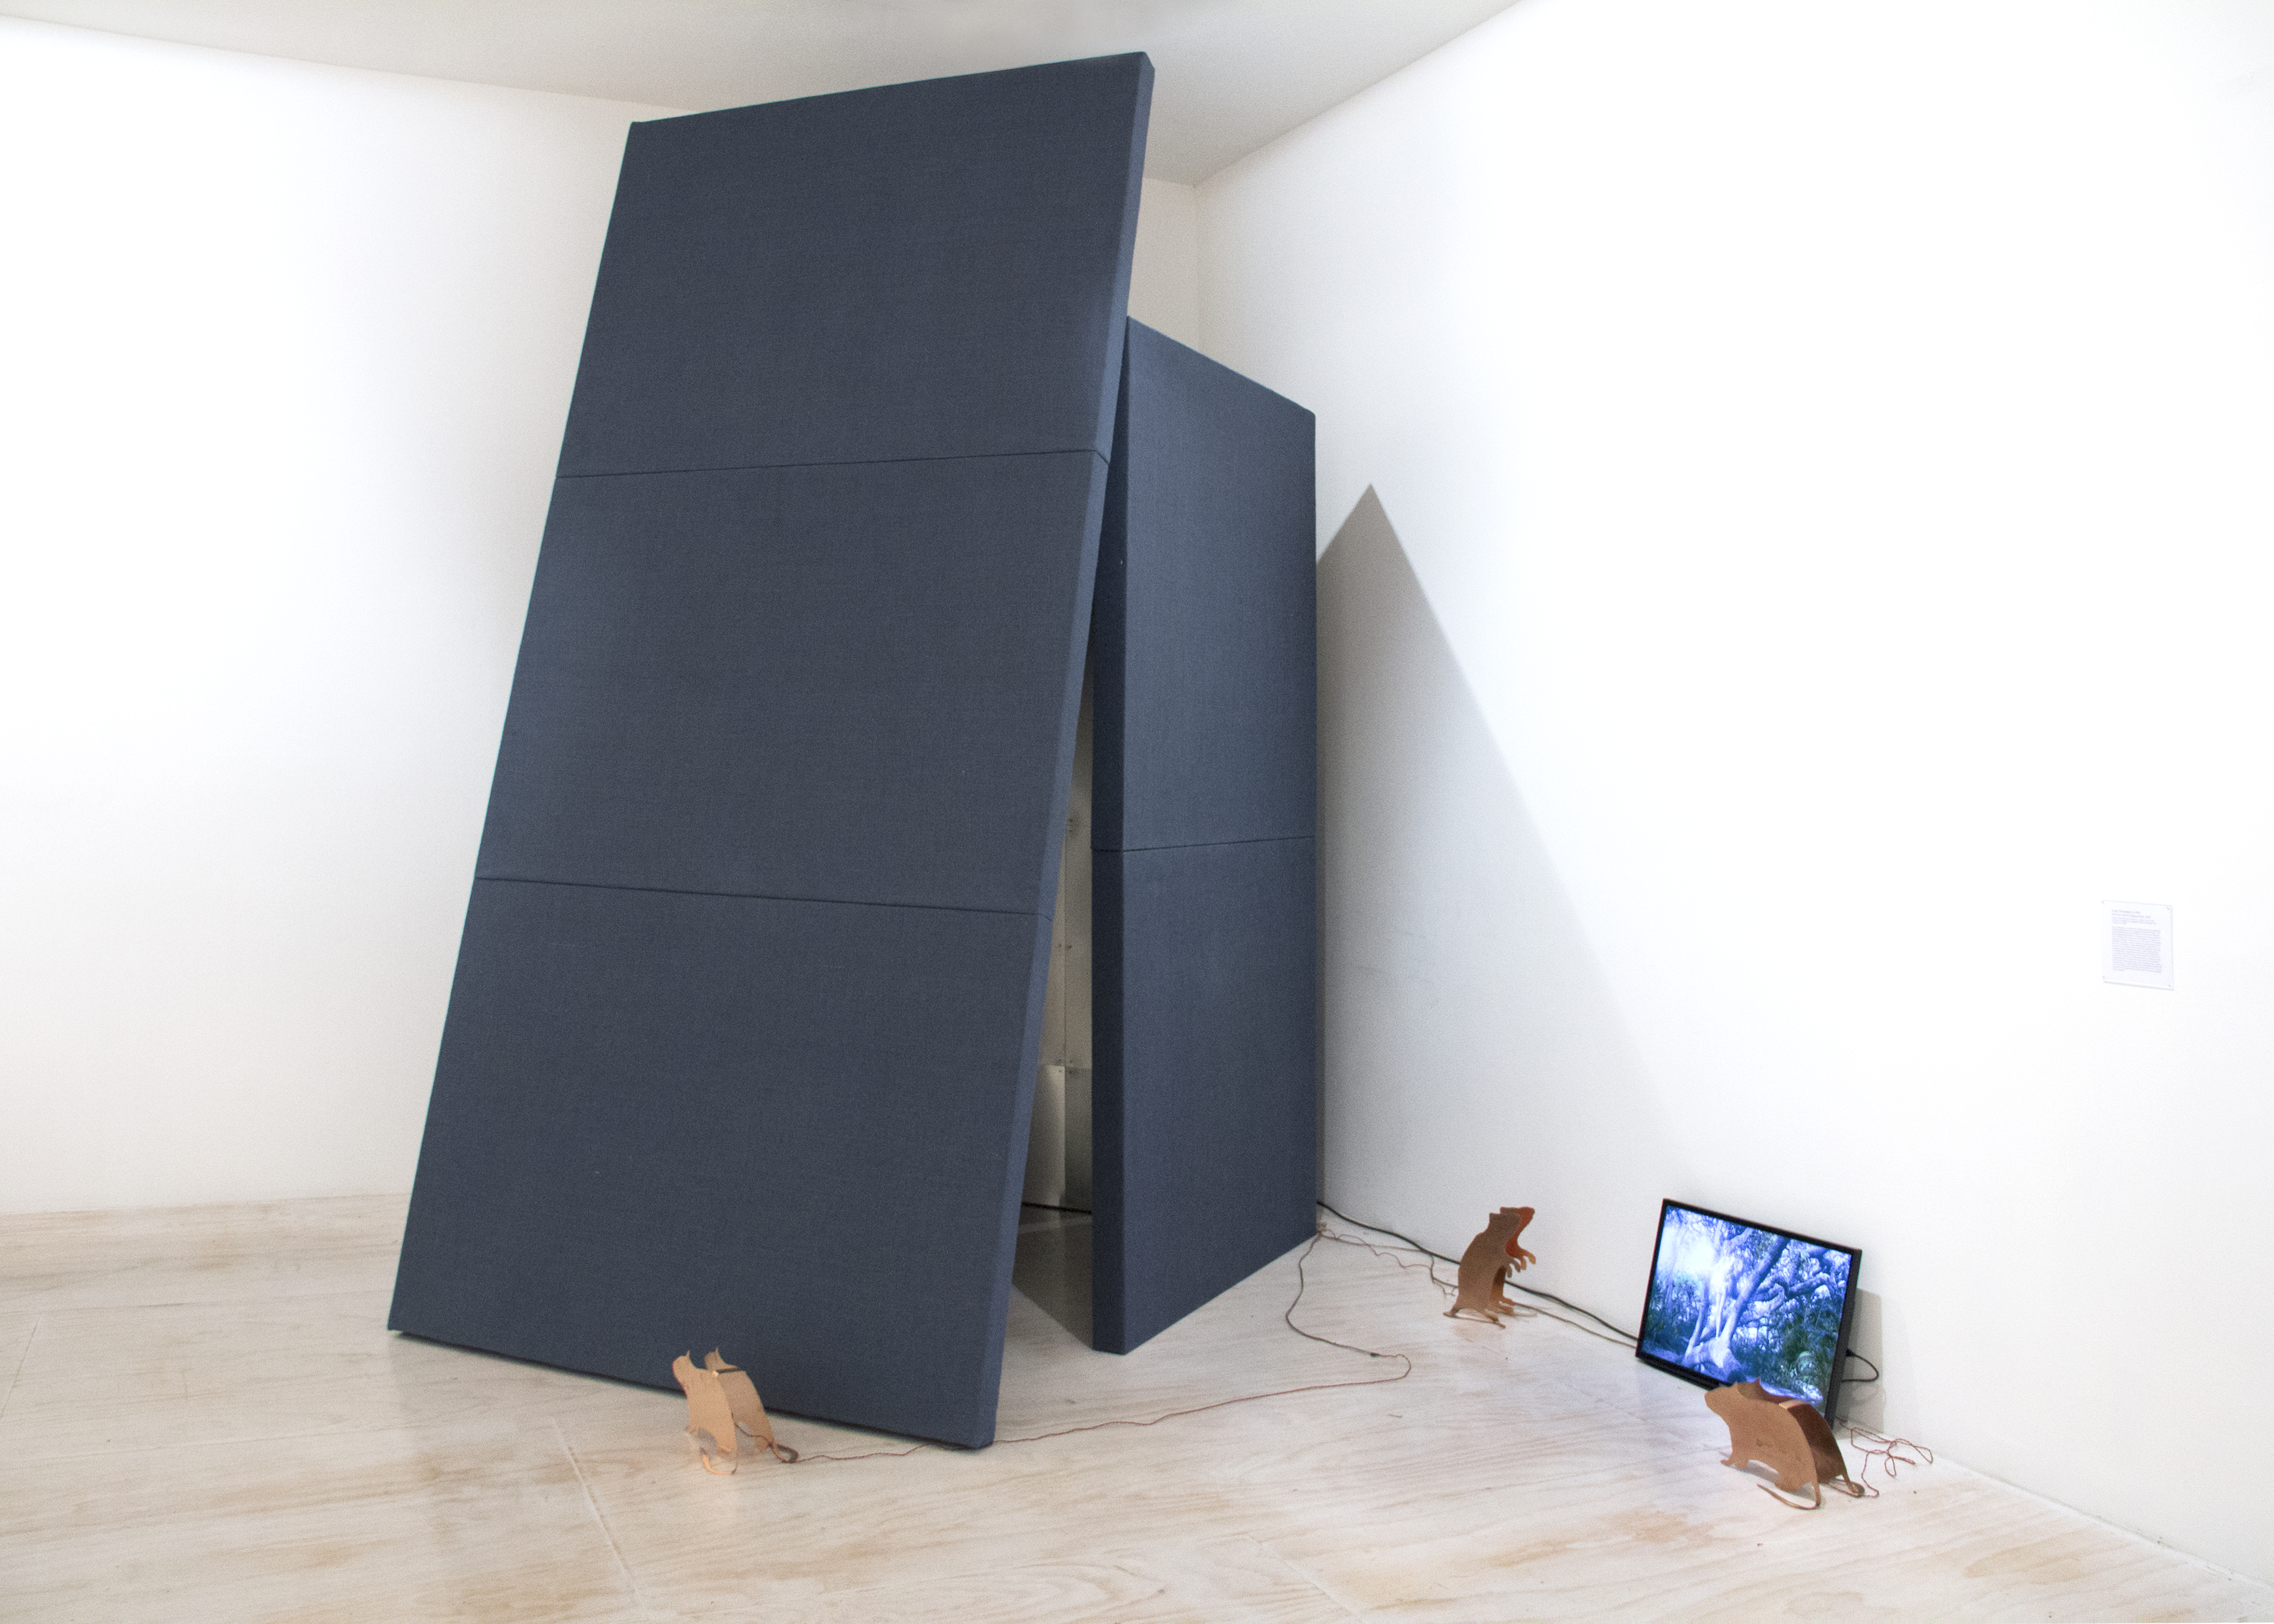 Sergei Tcherepnin, Piper's Cave, 2013, burlap, aluminium, zinc, black zinc, c-prints, wood, sound insulation, transducers, 4 amplifiers, Blu-Ray disc with 8 channels of sound, total running time: 21 minutes, 56 seconds, 132 x 108 x 72 inches